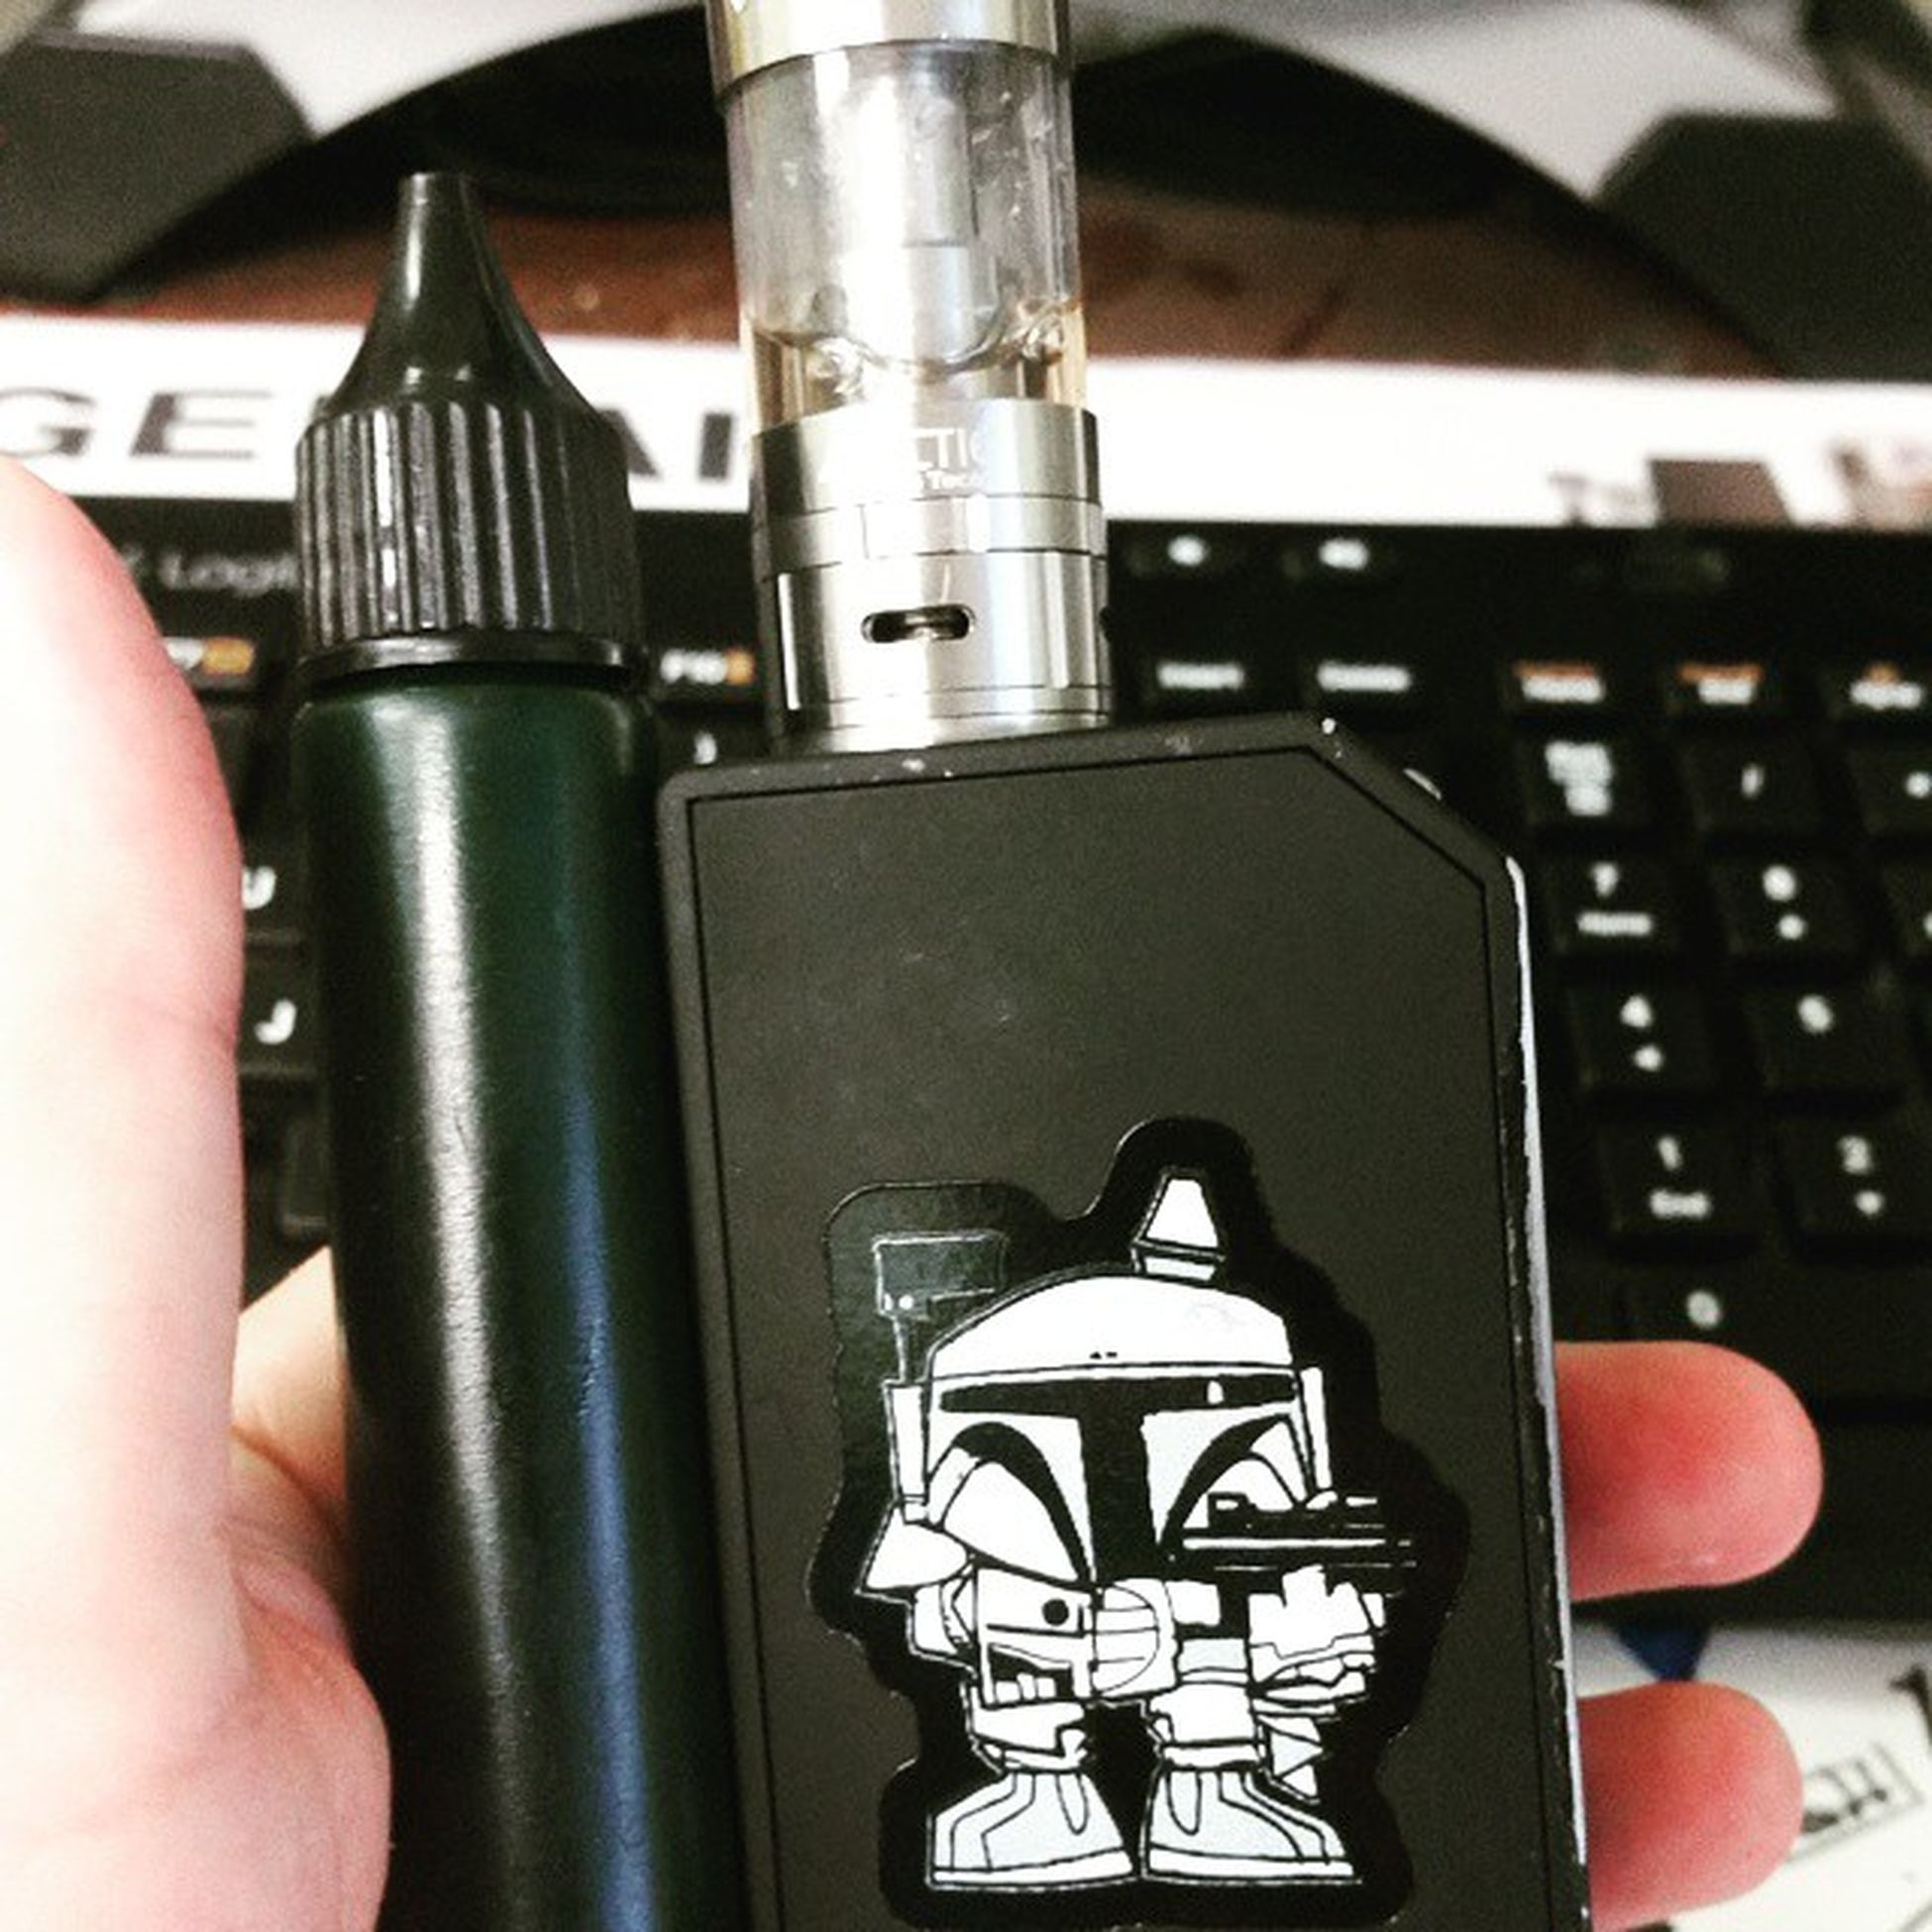 Morning handcheck at the office Le80 ArcticTank